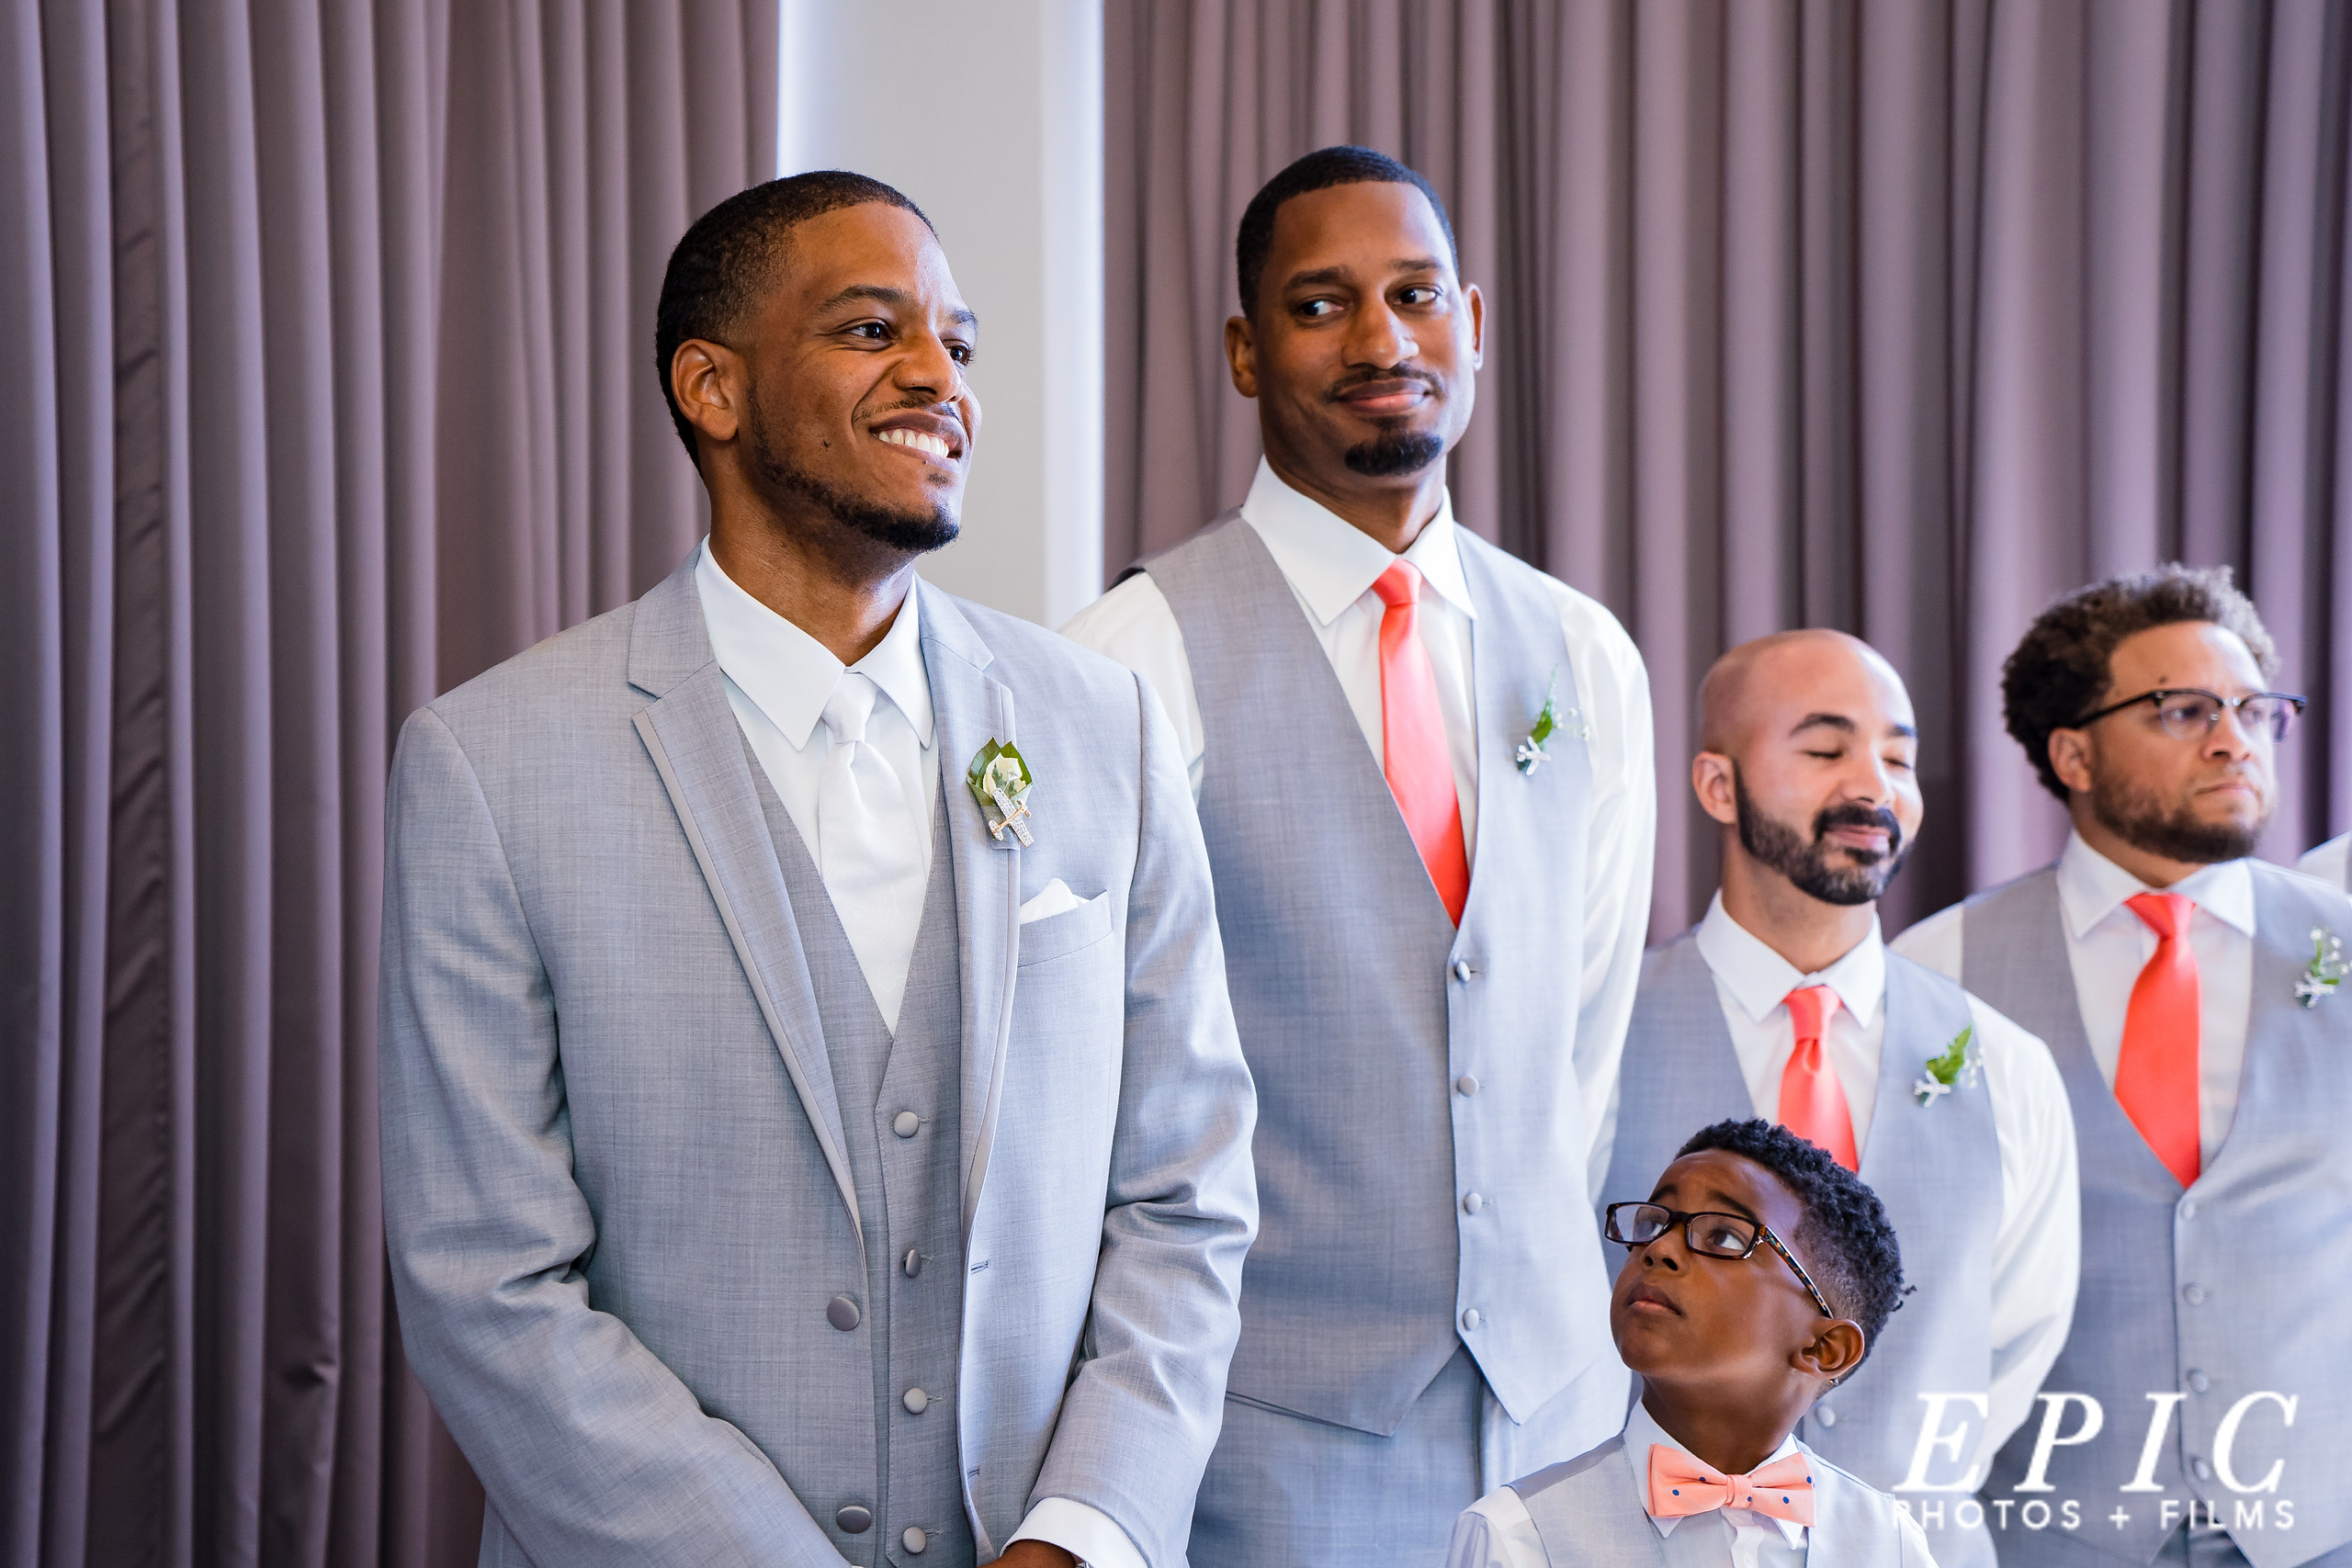 Groom smiling and looking down the aisle at The Orion Ballroom with his groomsmen standing at his side